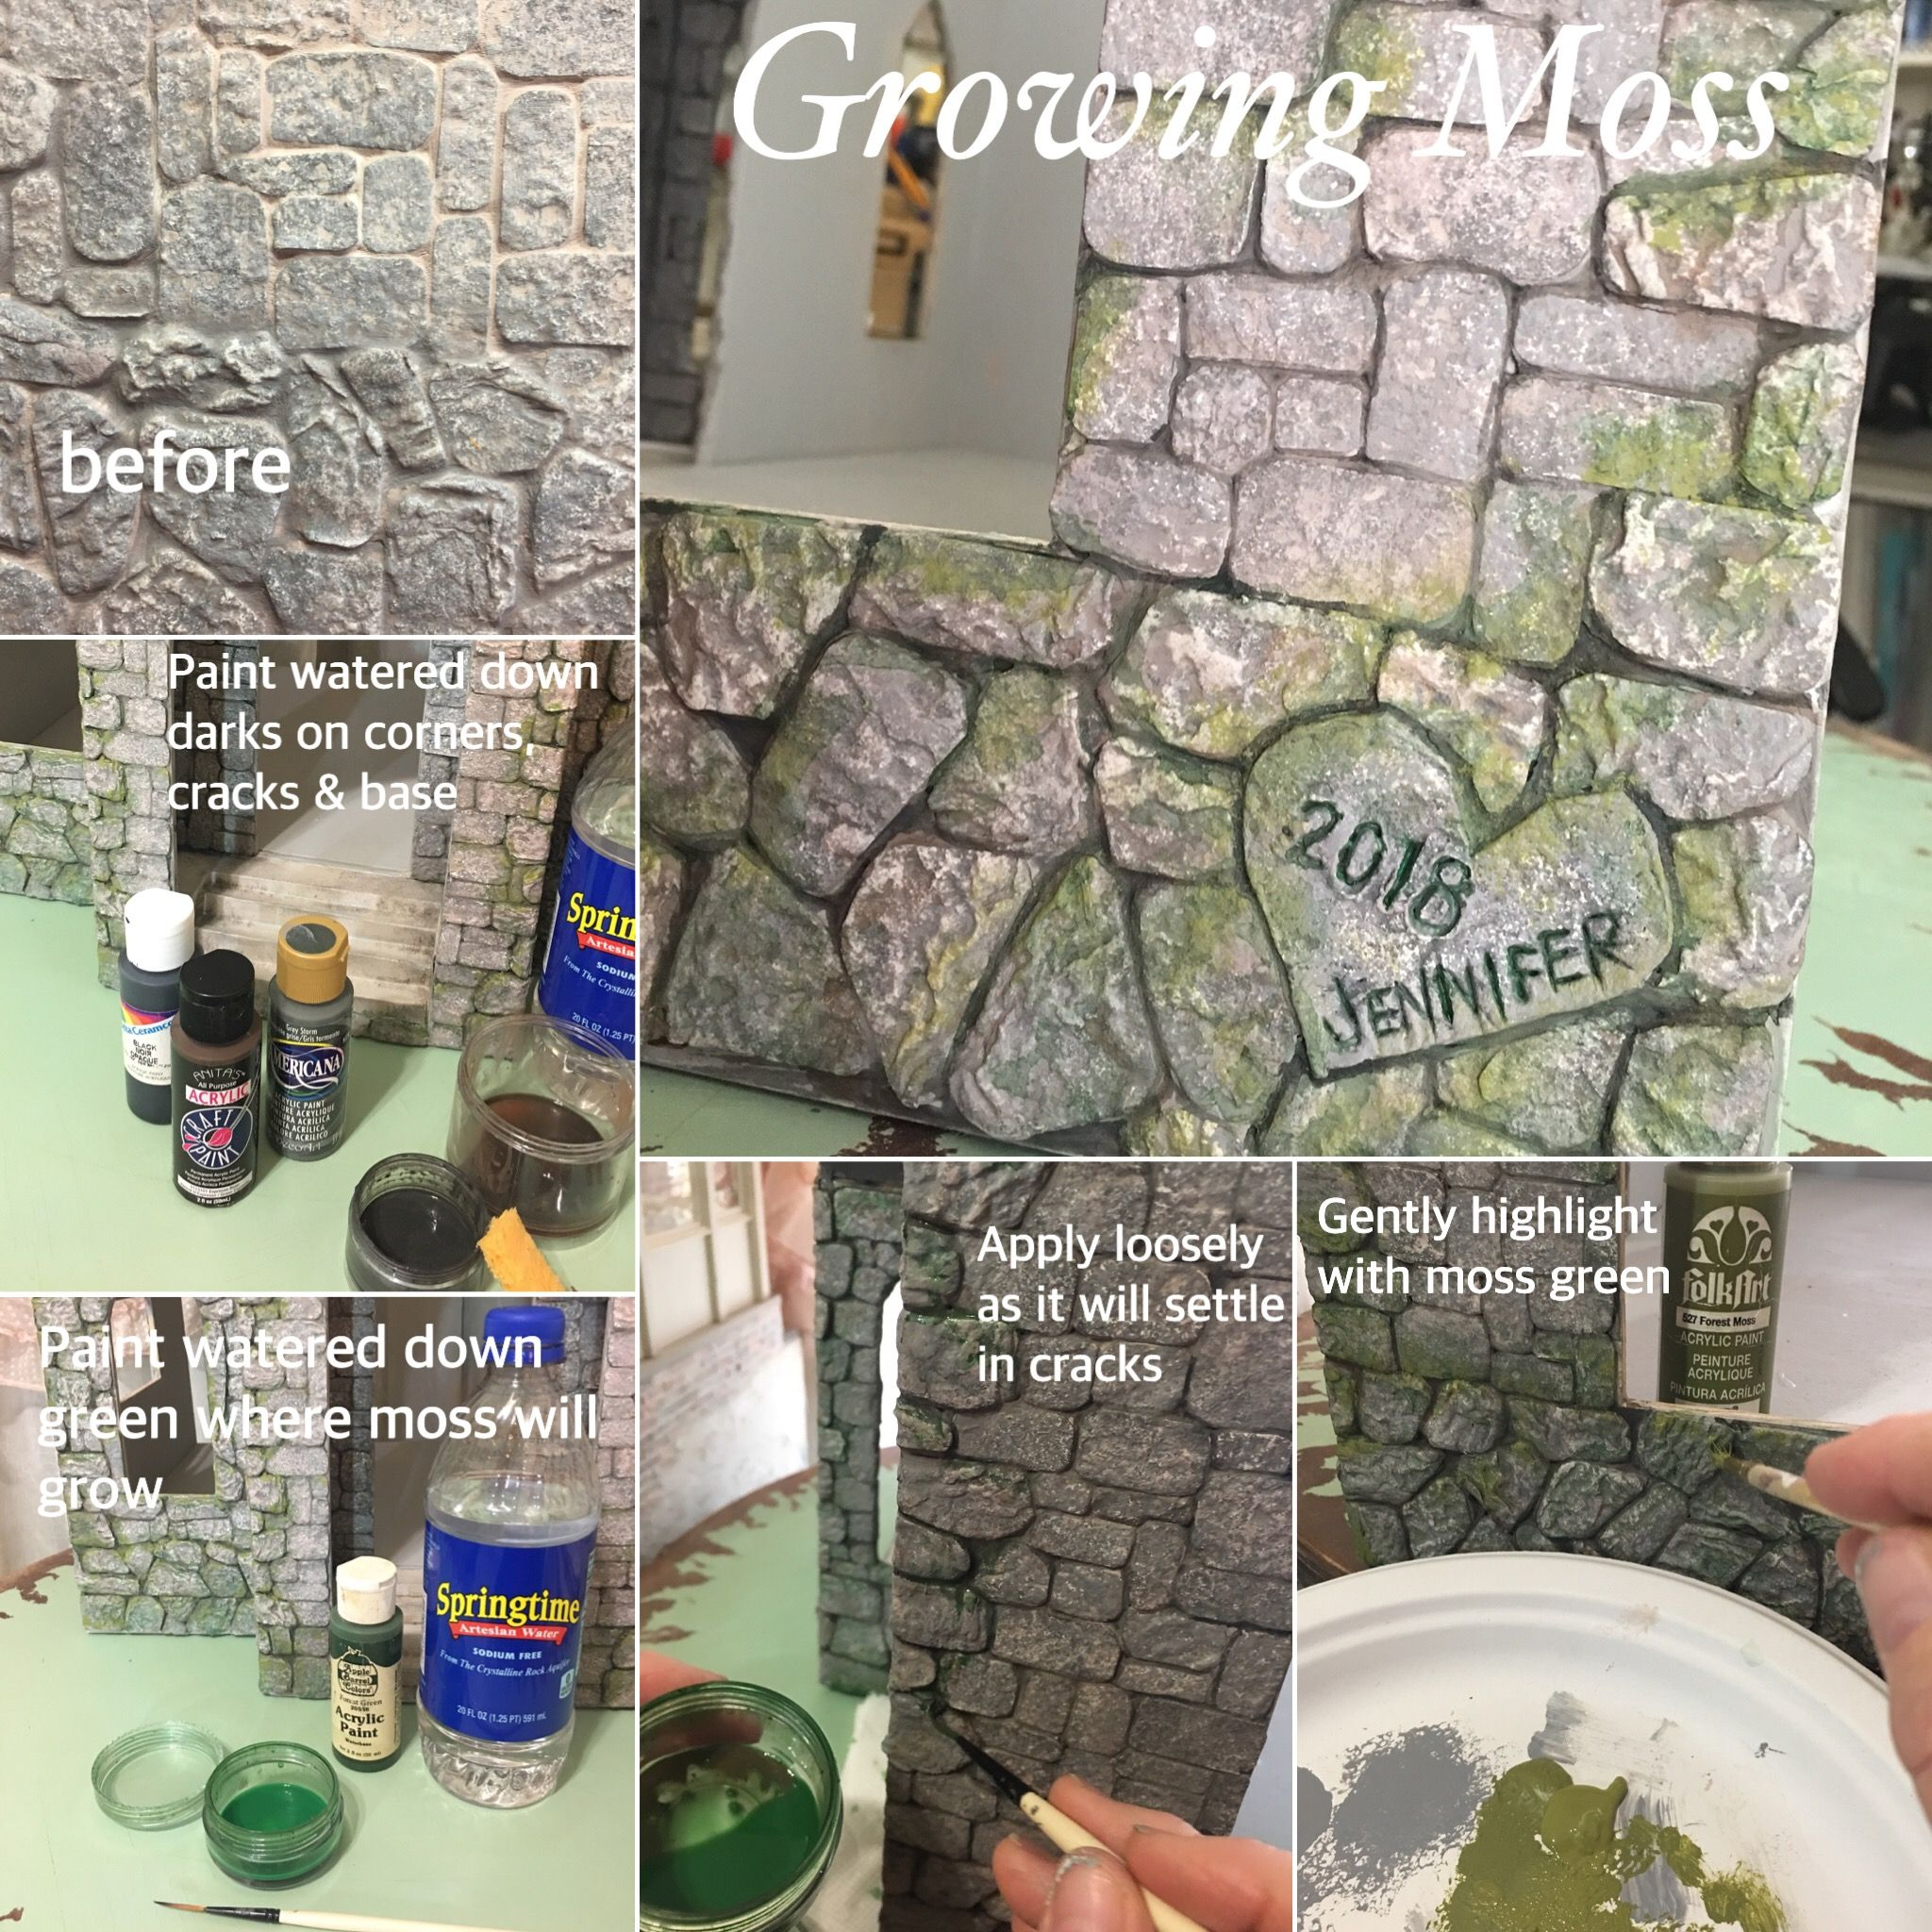 Stones Meubles Diy Miniature Stone Cottage Moss And Aging Tutorial For Egg Carton